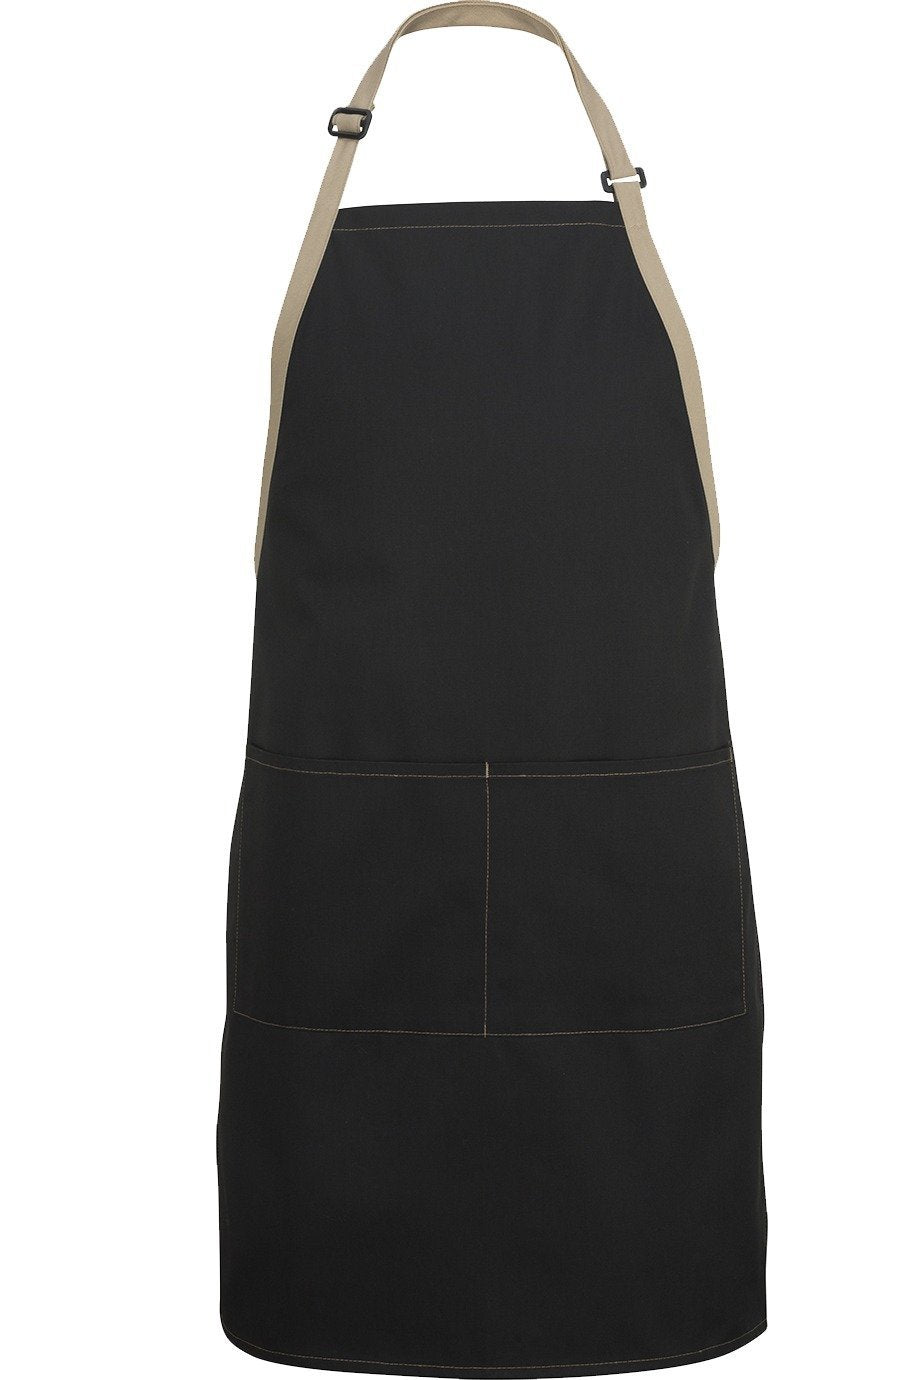 Black w/ Khaki Bib Color Block Adjustable Apron (2 Pockets)